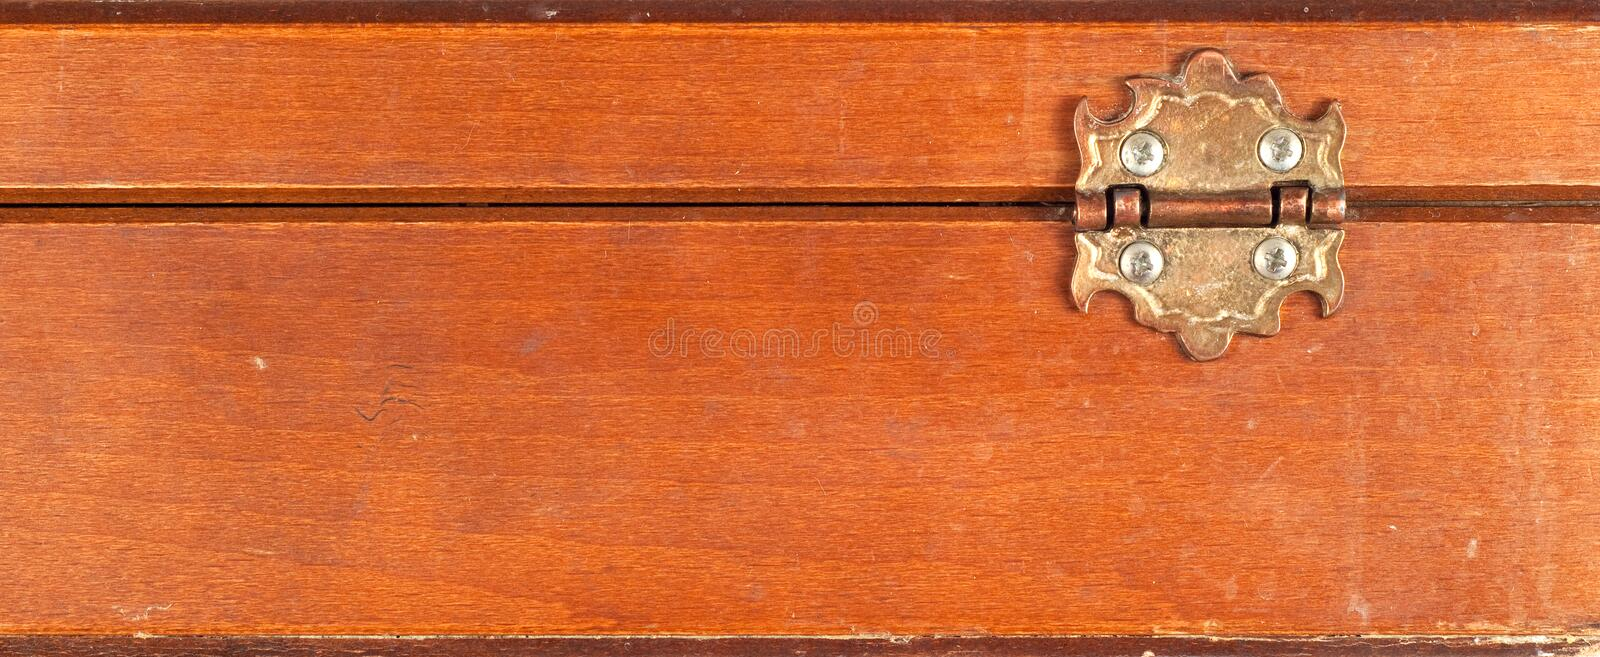 Download Wooden box hinge stock photo. Image of background, latch - 23639606